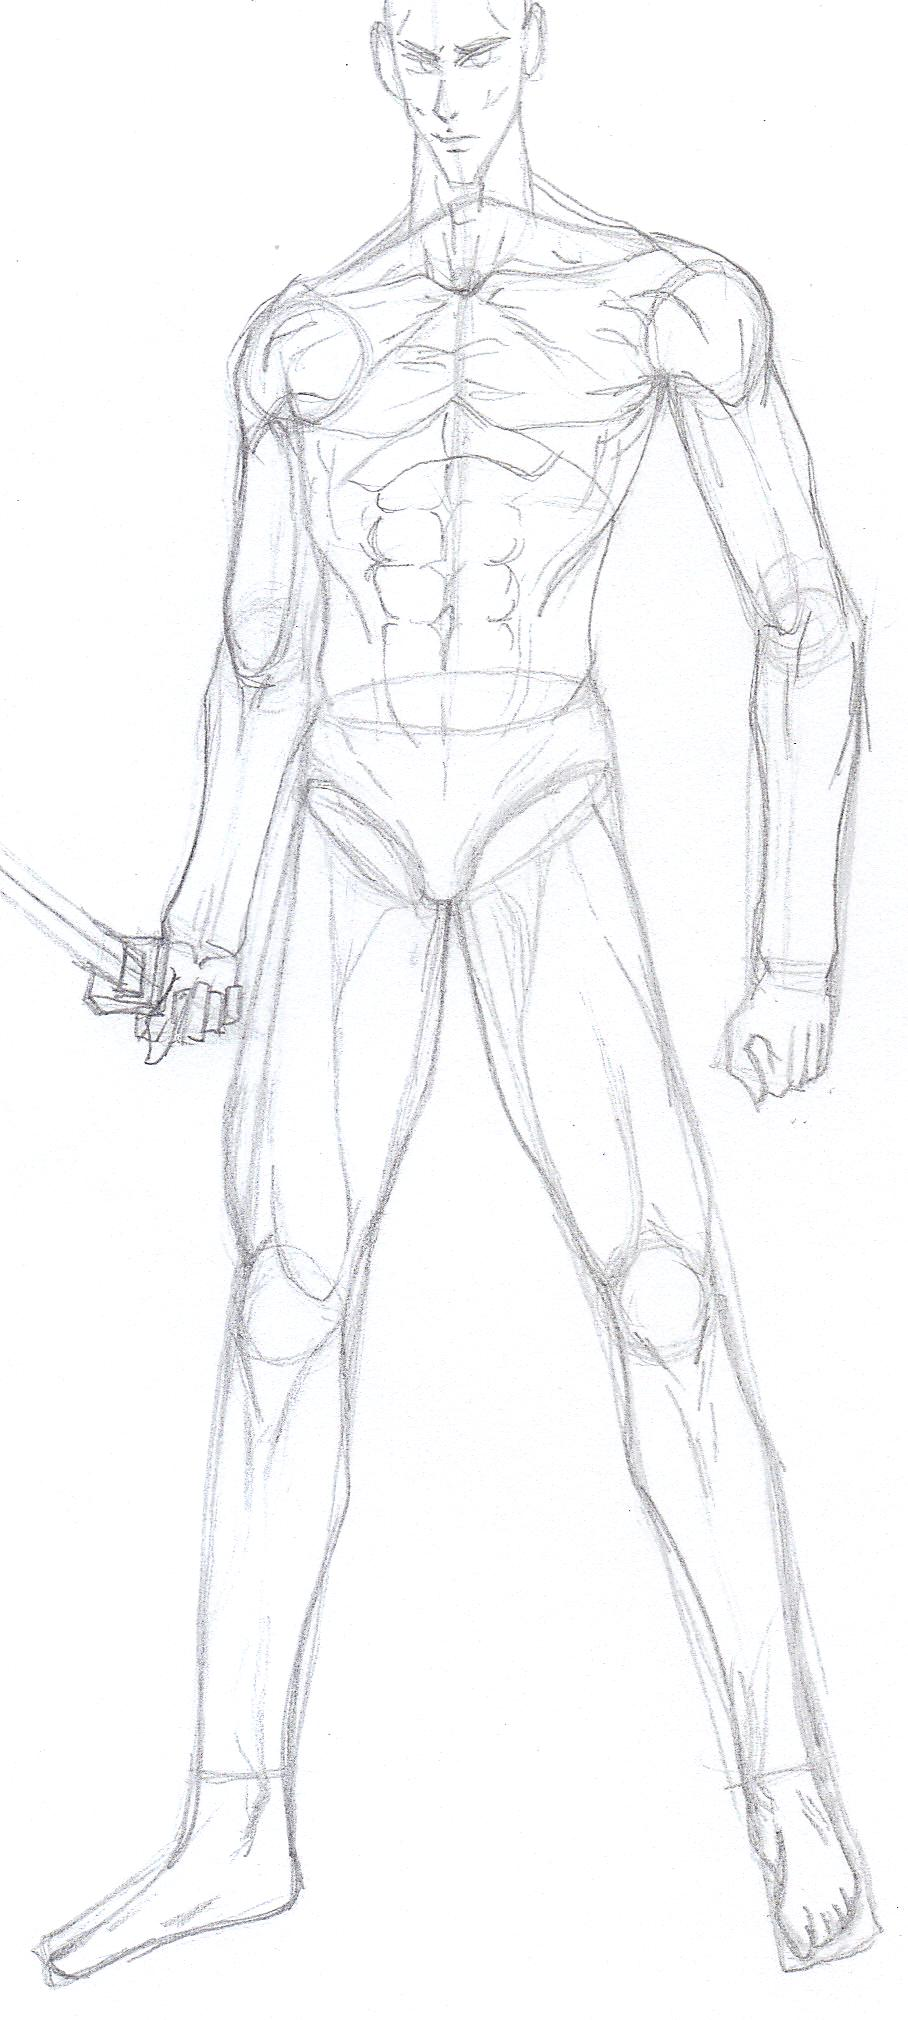 Drawing Tutorial #2 Muscle Anatomy by blazewb on DeviantArt